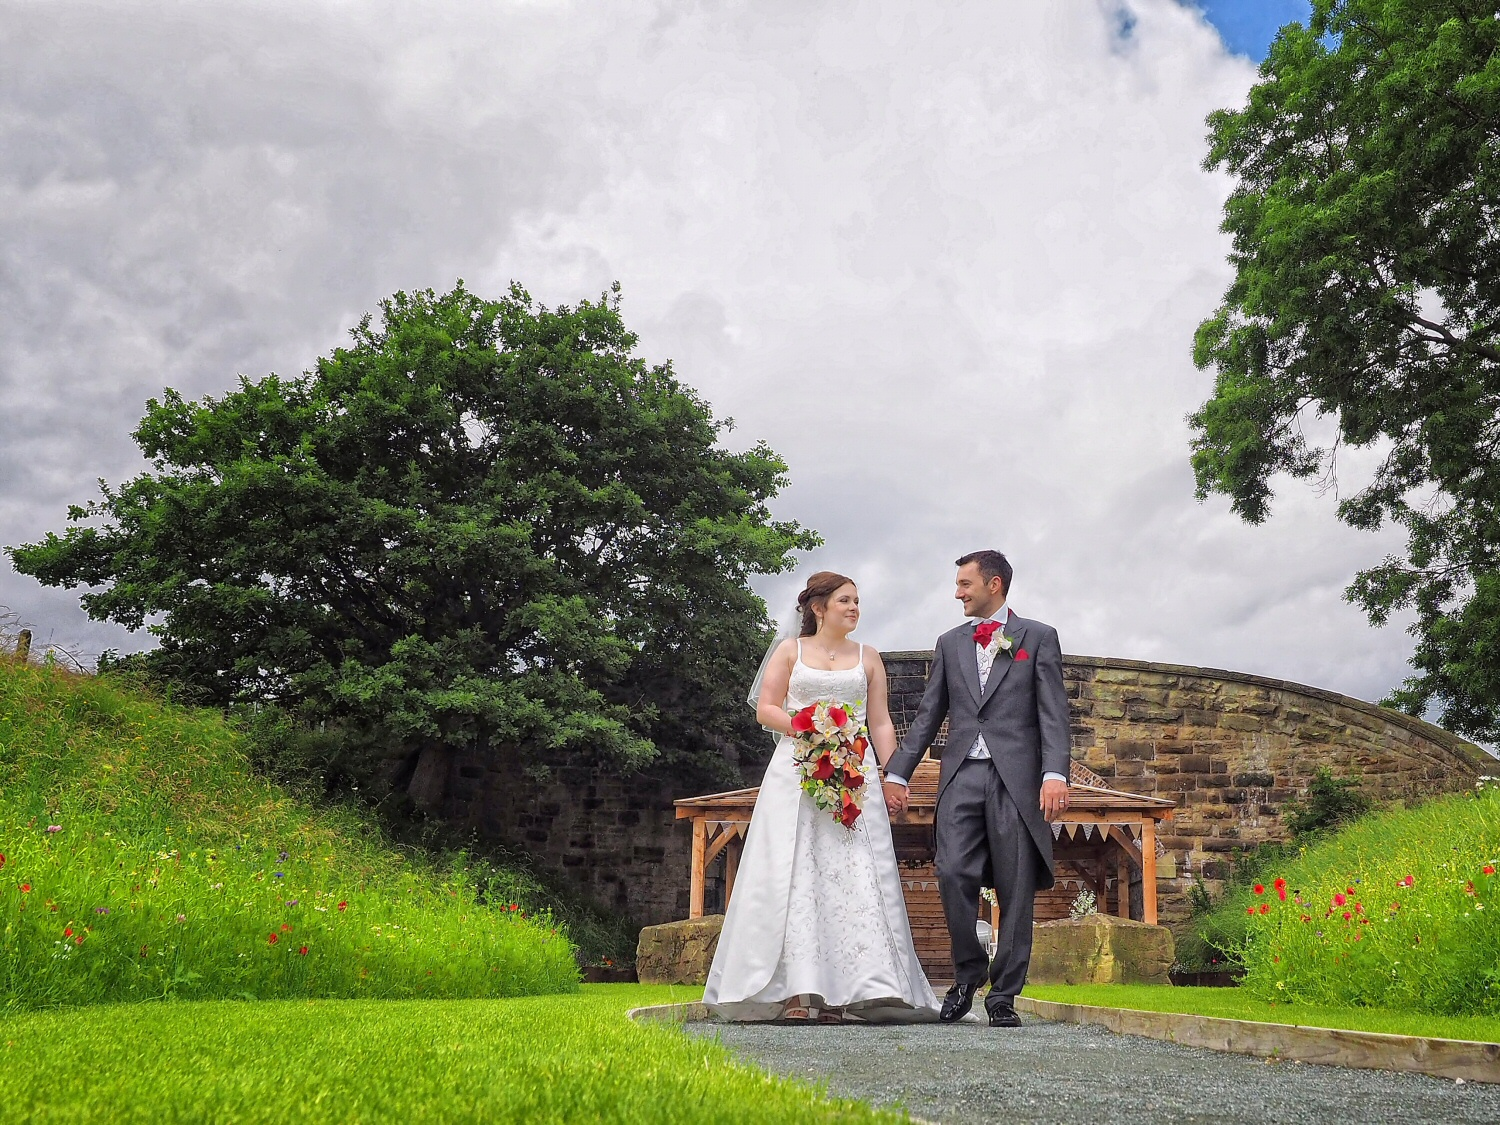 local photographer covering weddings at Tower Hill Barns near Wrexham and LLangollen